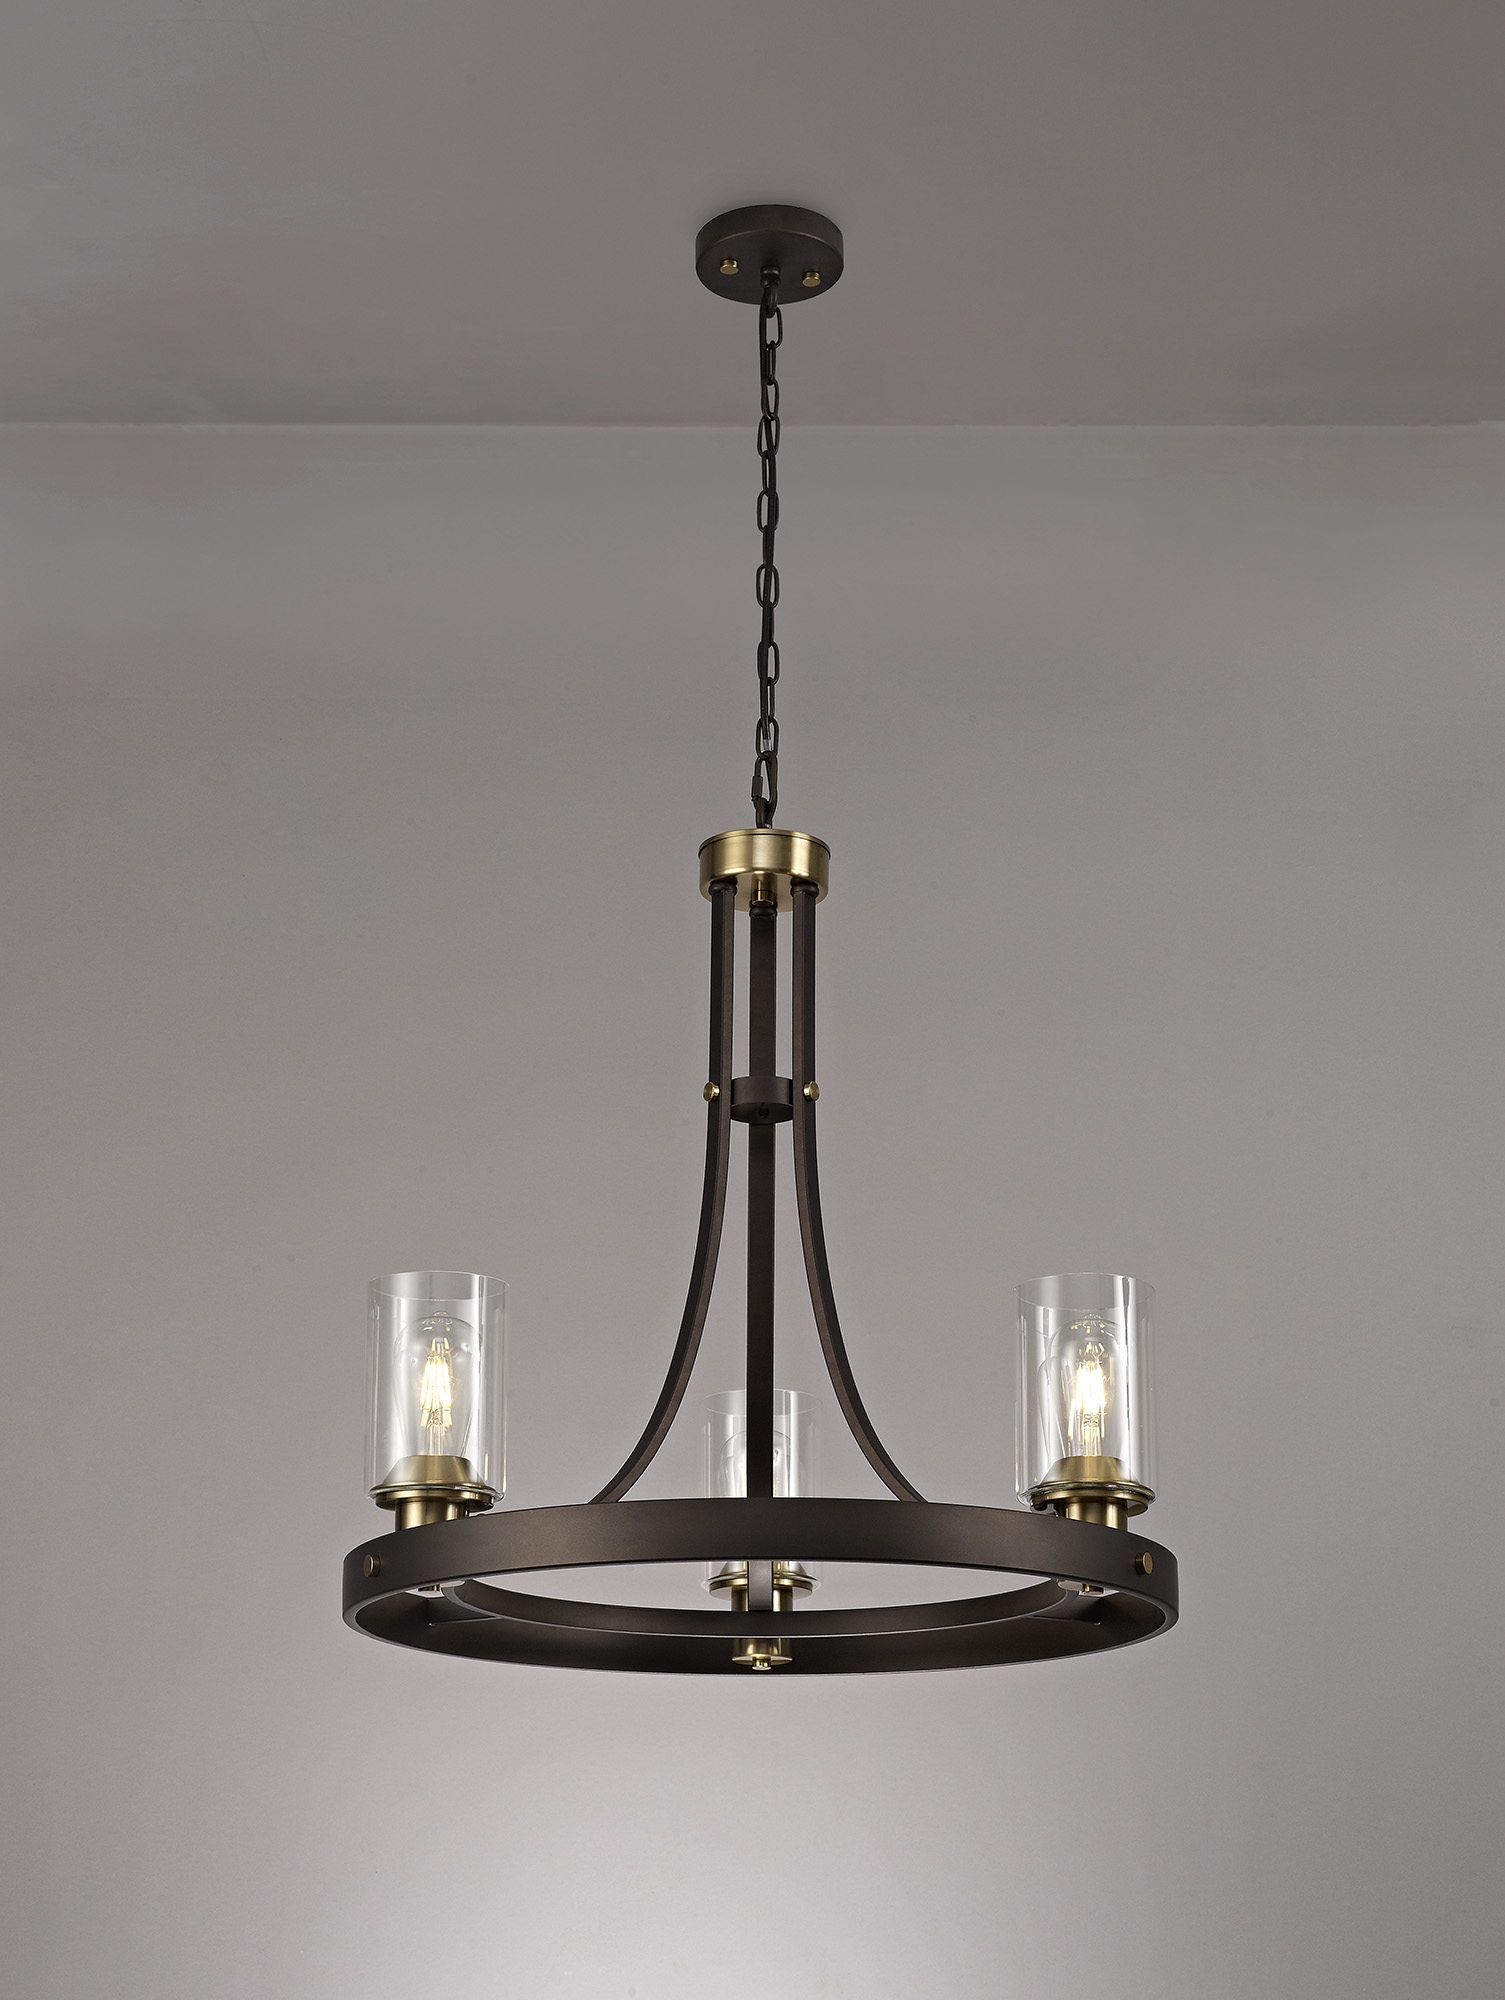 Pendant 3 Light E27, Brown Oxide/Bronze With Clear Glass Shades